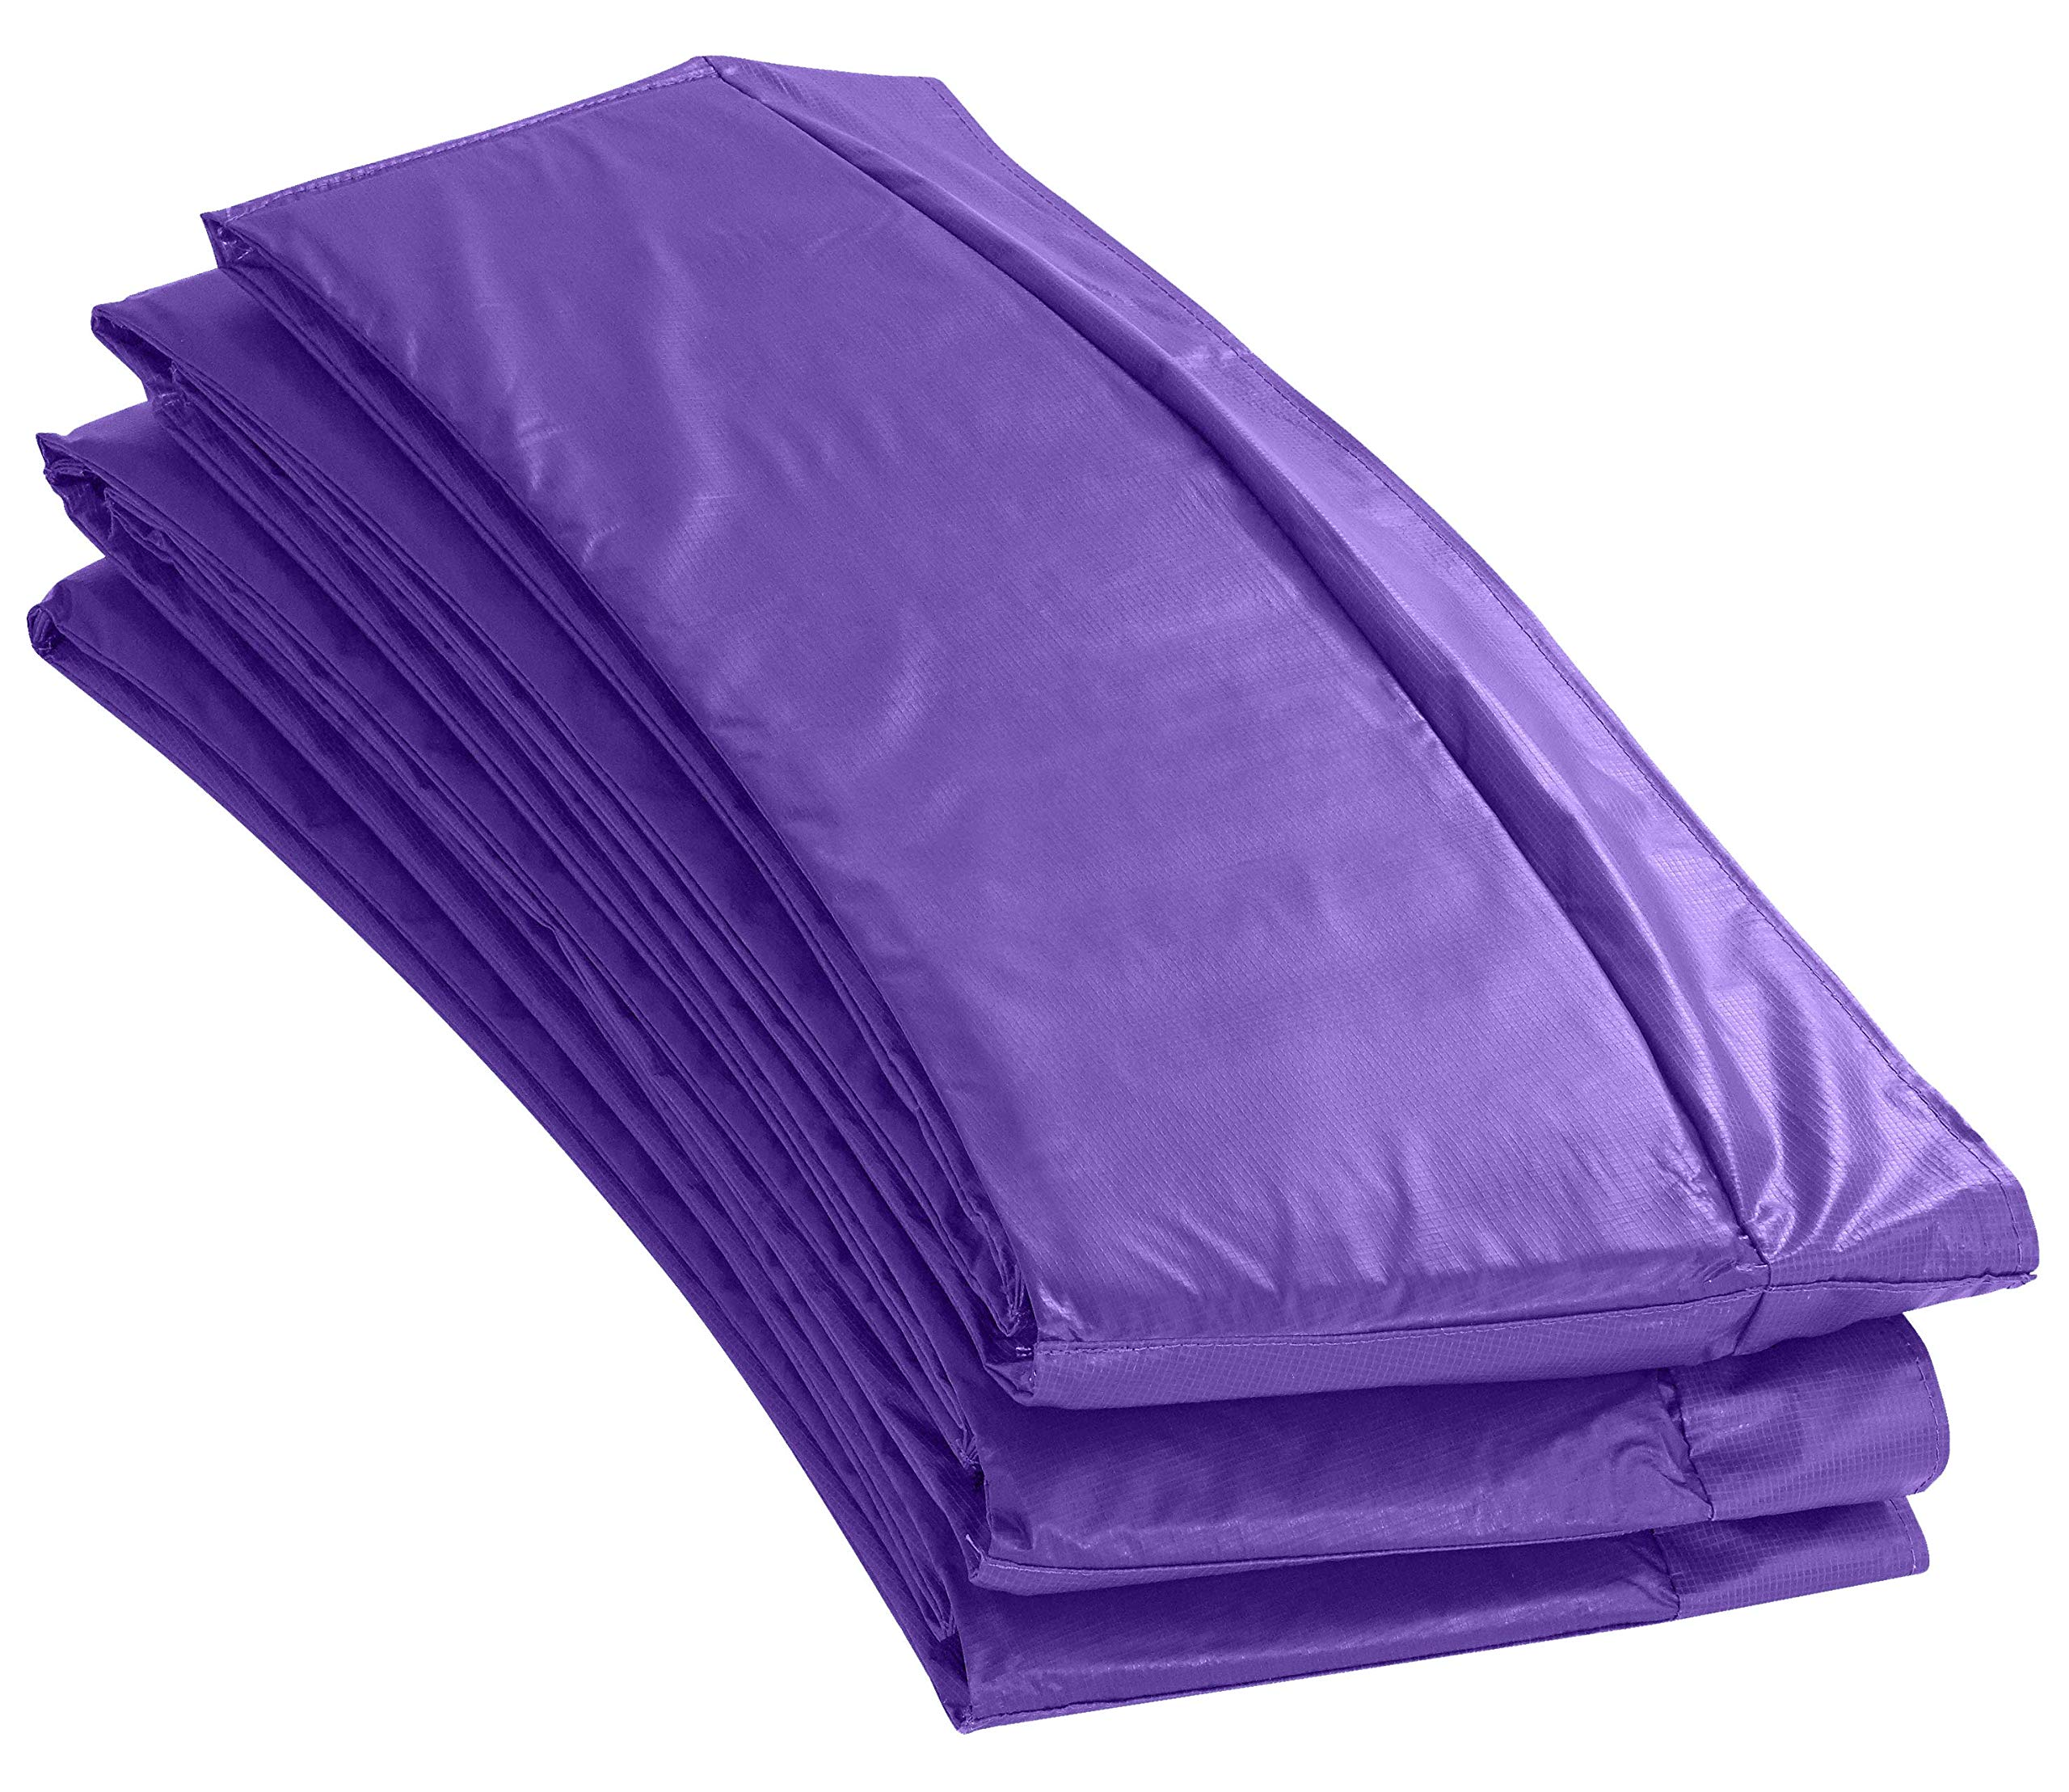 Upper Bounce Super Trampoline Replacement Safety Pad (Spring Cover) Fits for 11 FT. Round Frames - Purple by Upper Bounce